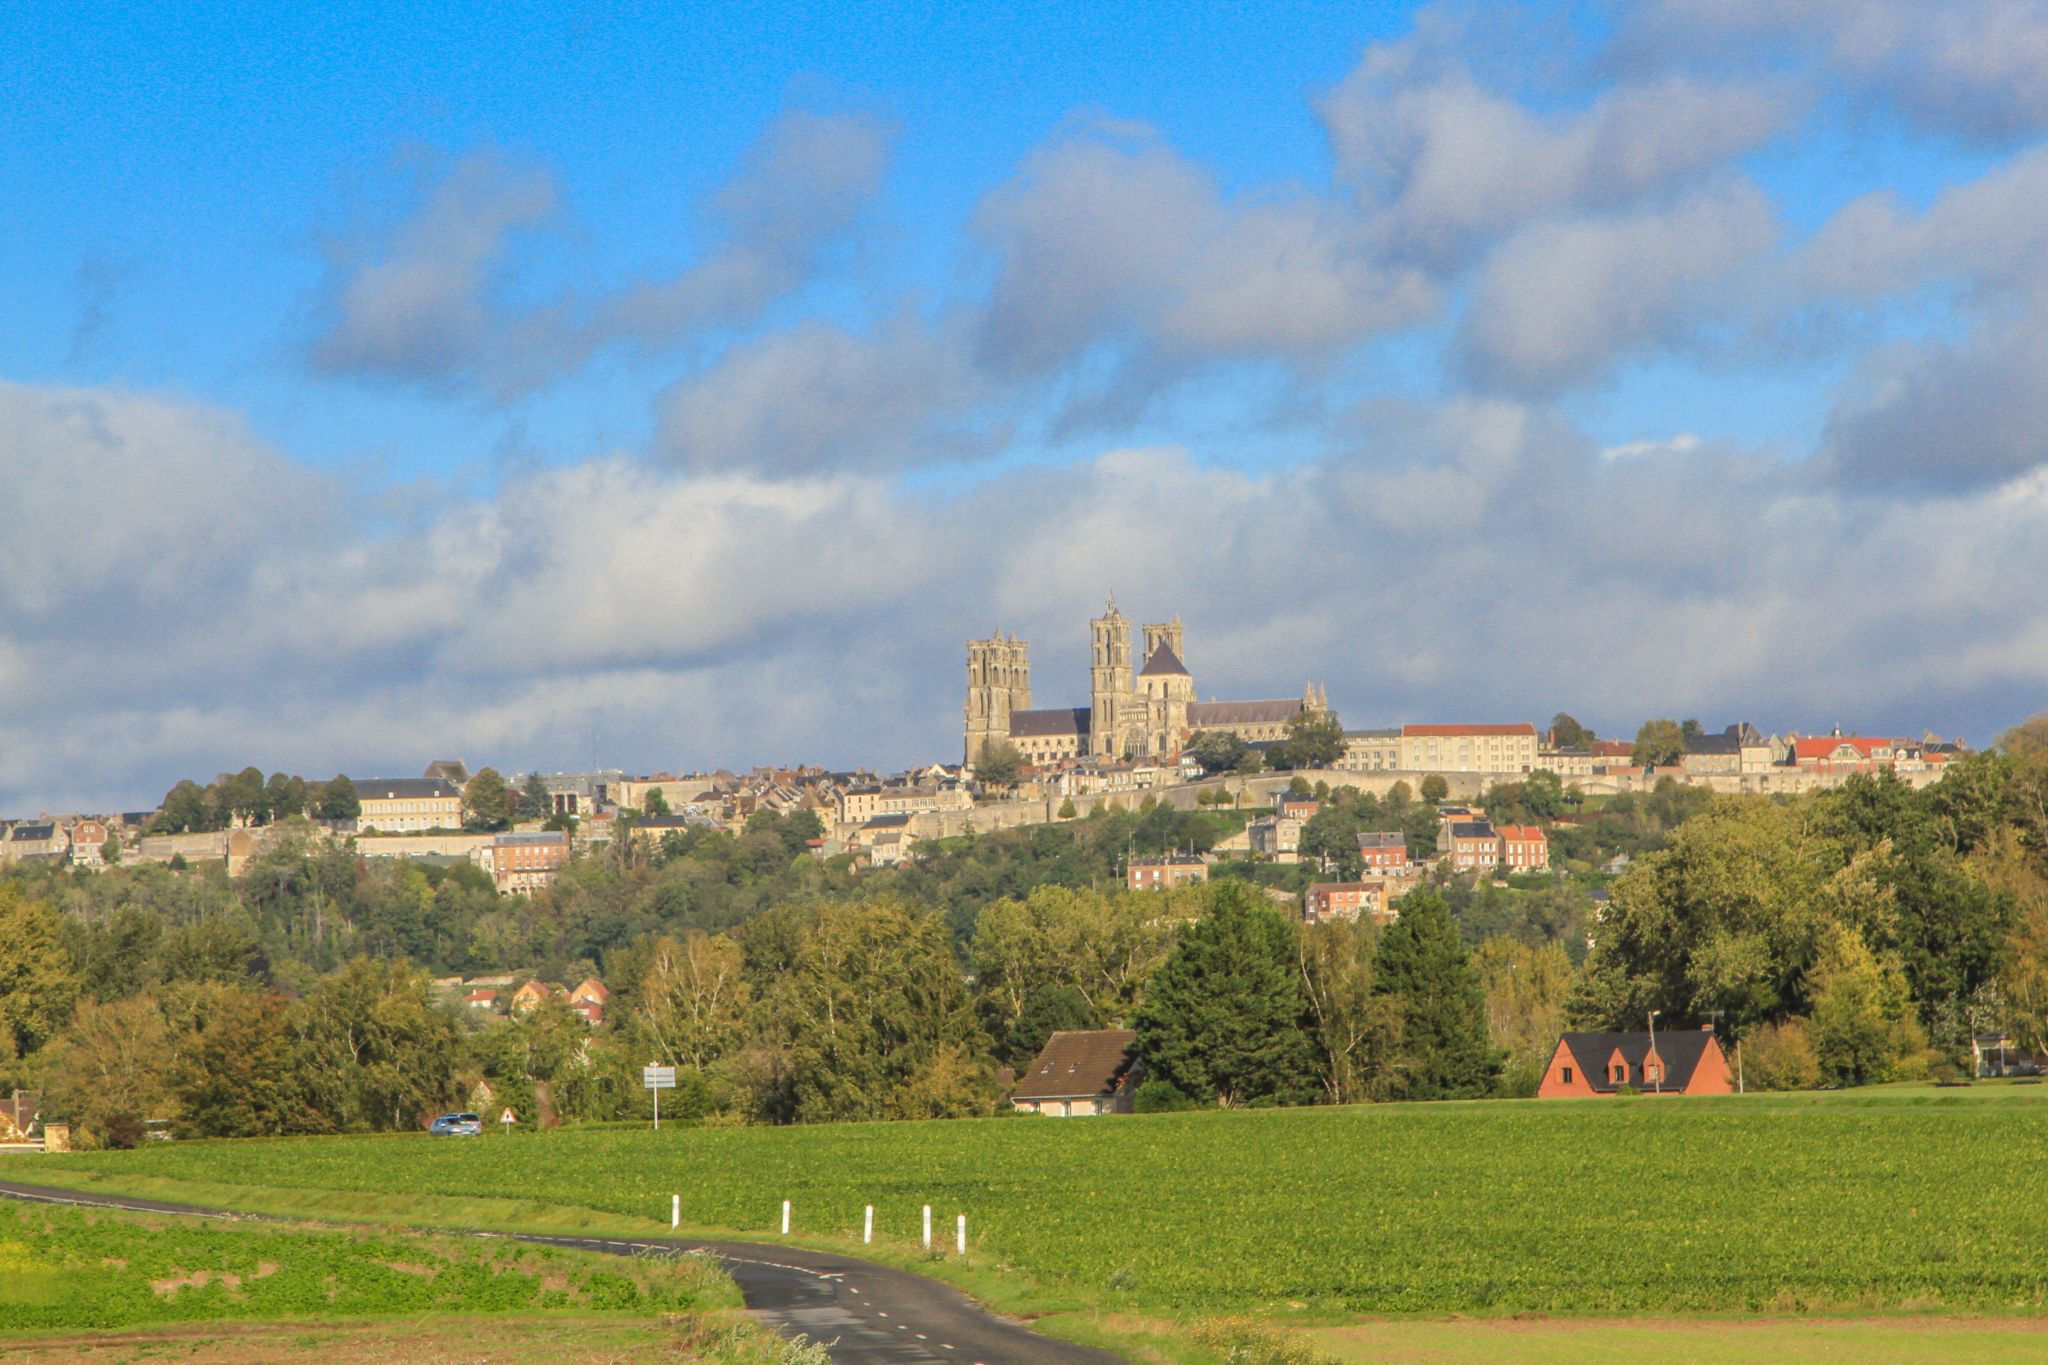 Cathedral and old town, Laon, France